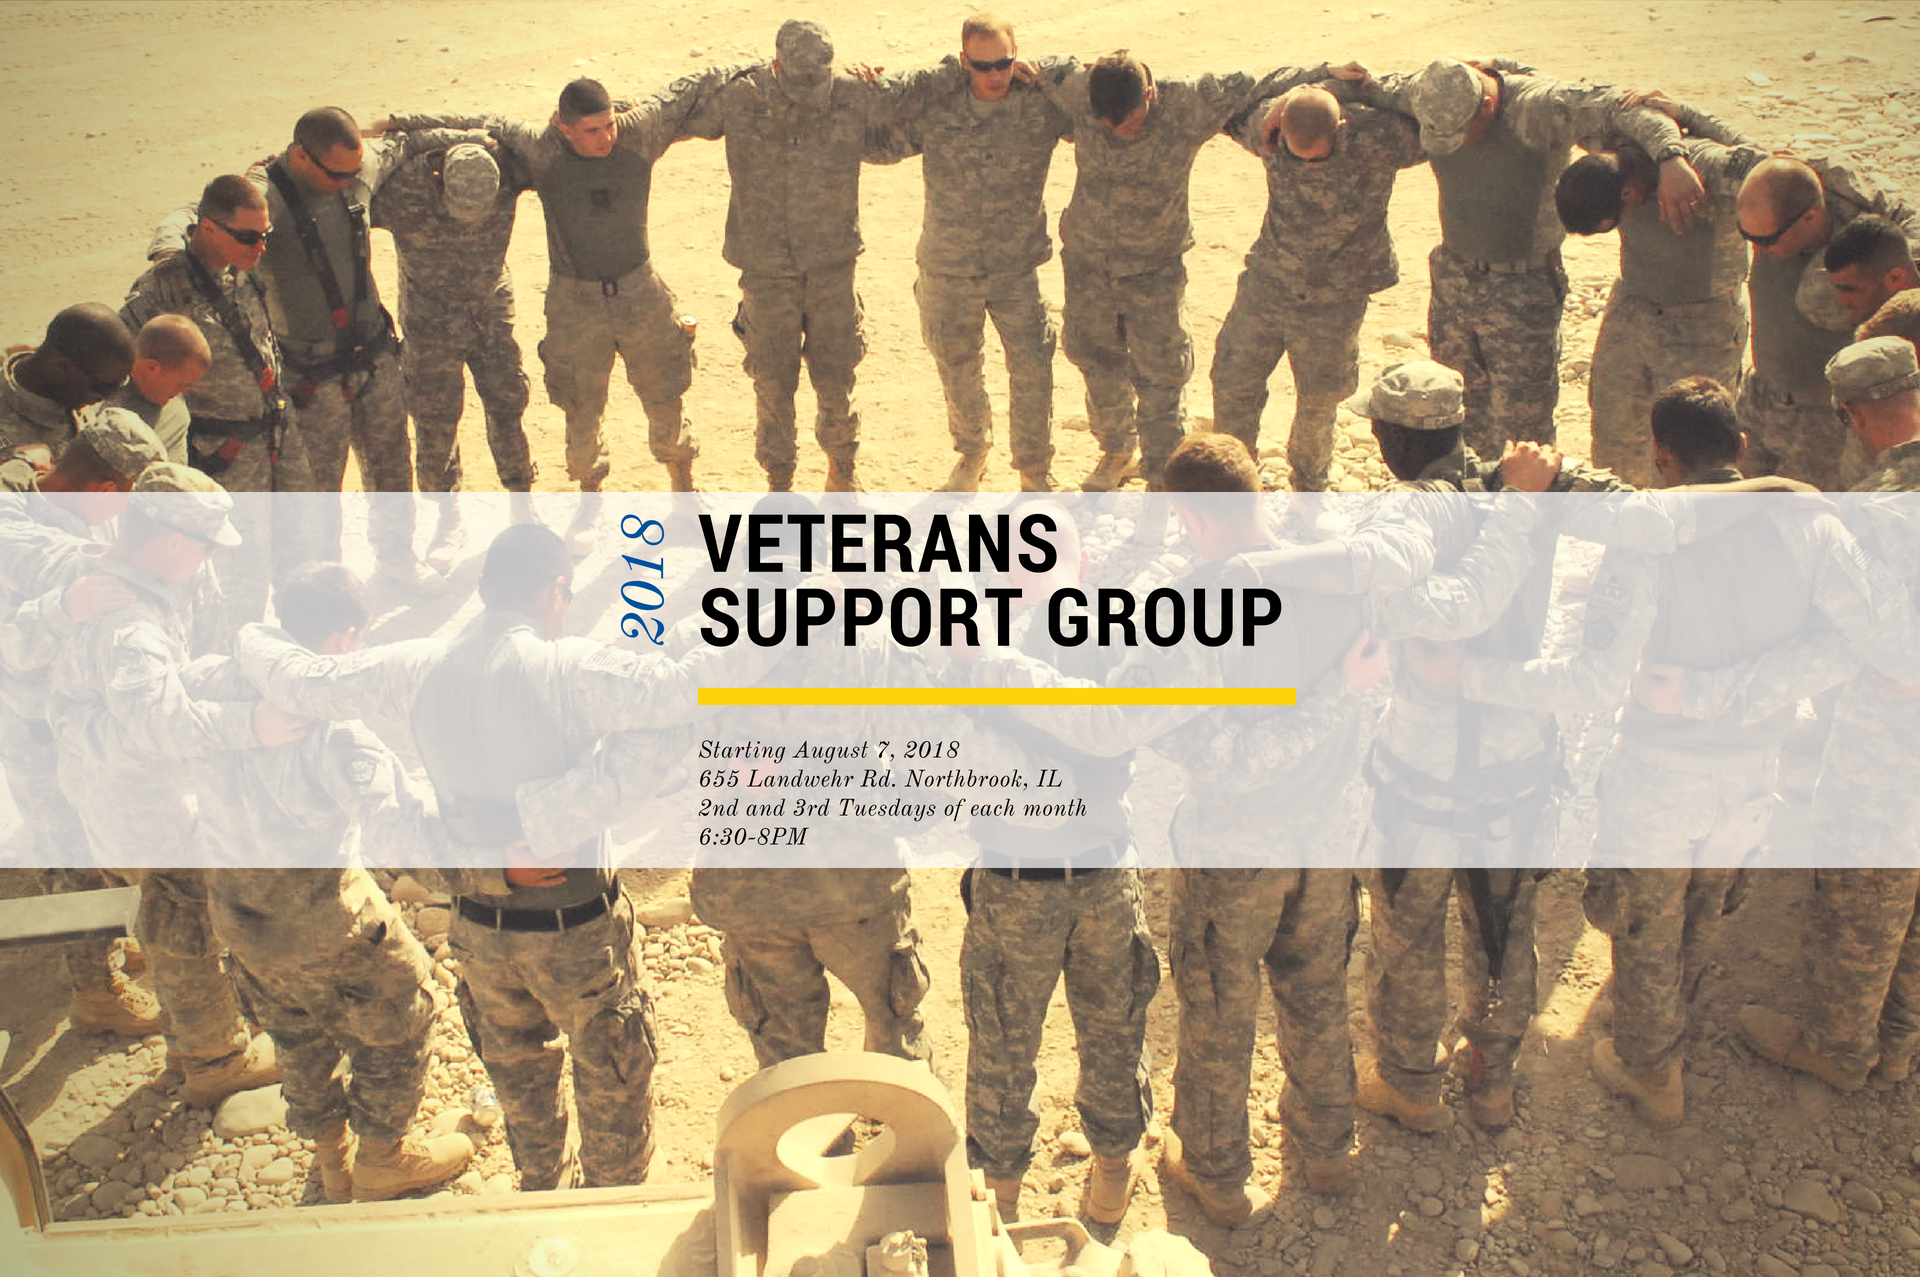 VETERANS SUPPORT GROUP CHICAGO